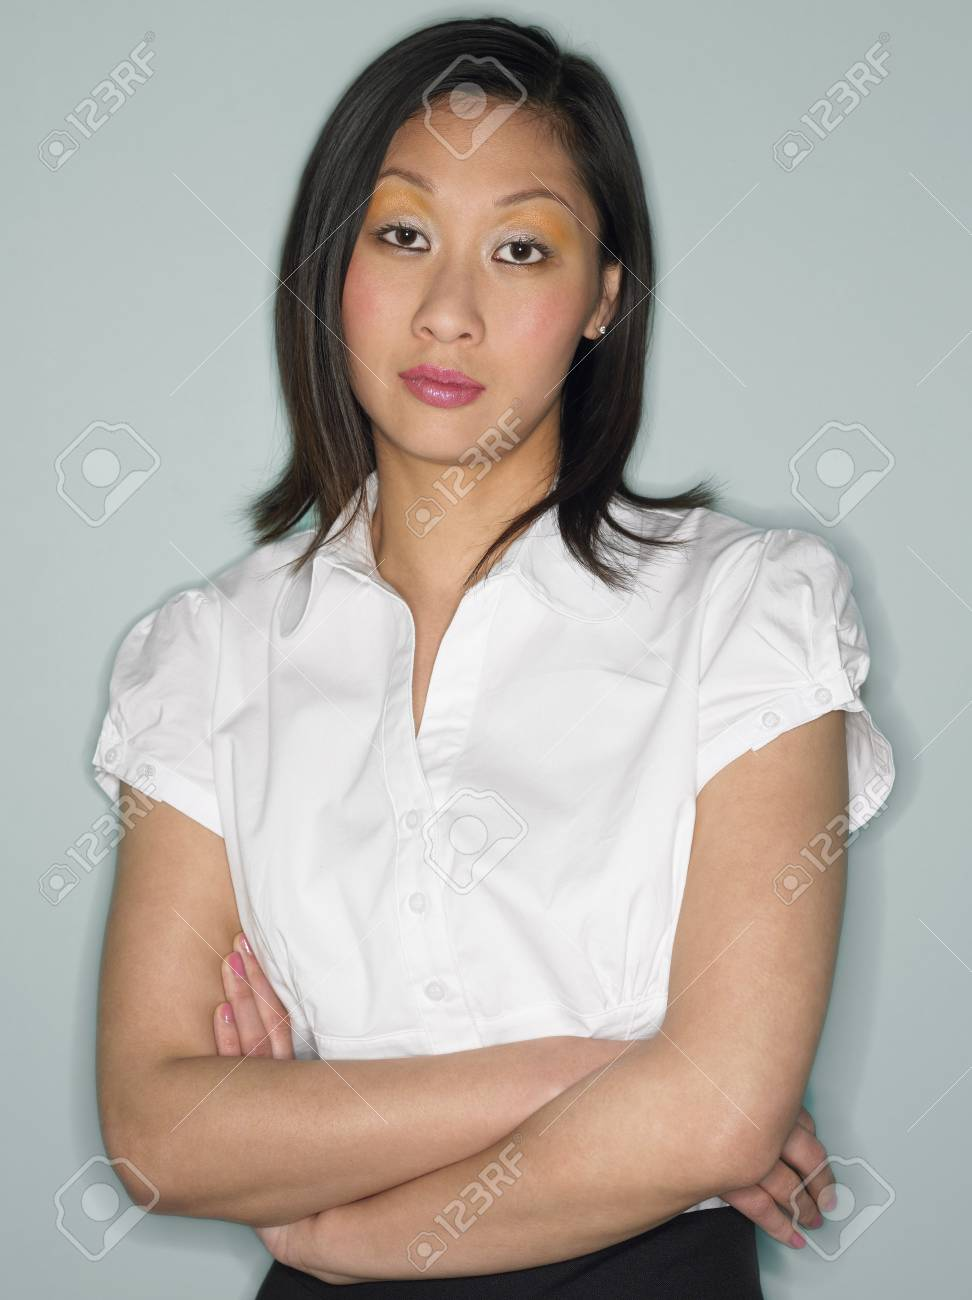 Woman with Arms Crossed in studio half-length Stock Photo - 8844563